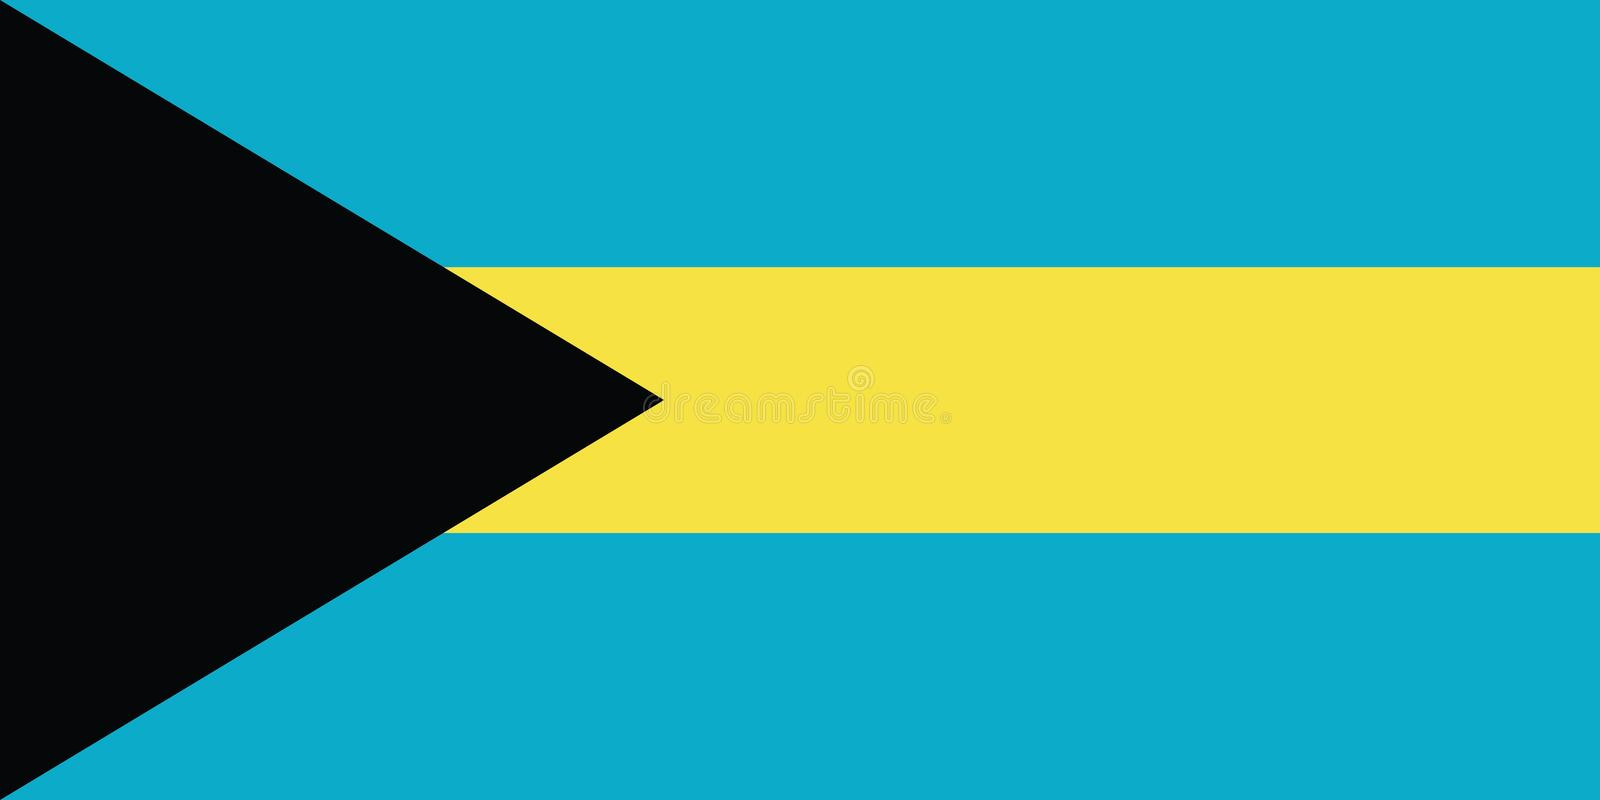 Drapeau d'illustration de vecteur des Bahamas illustration stock